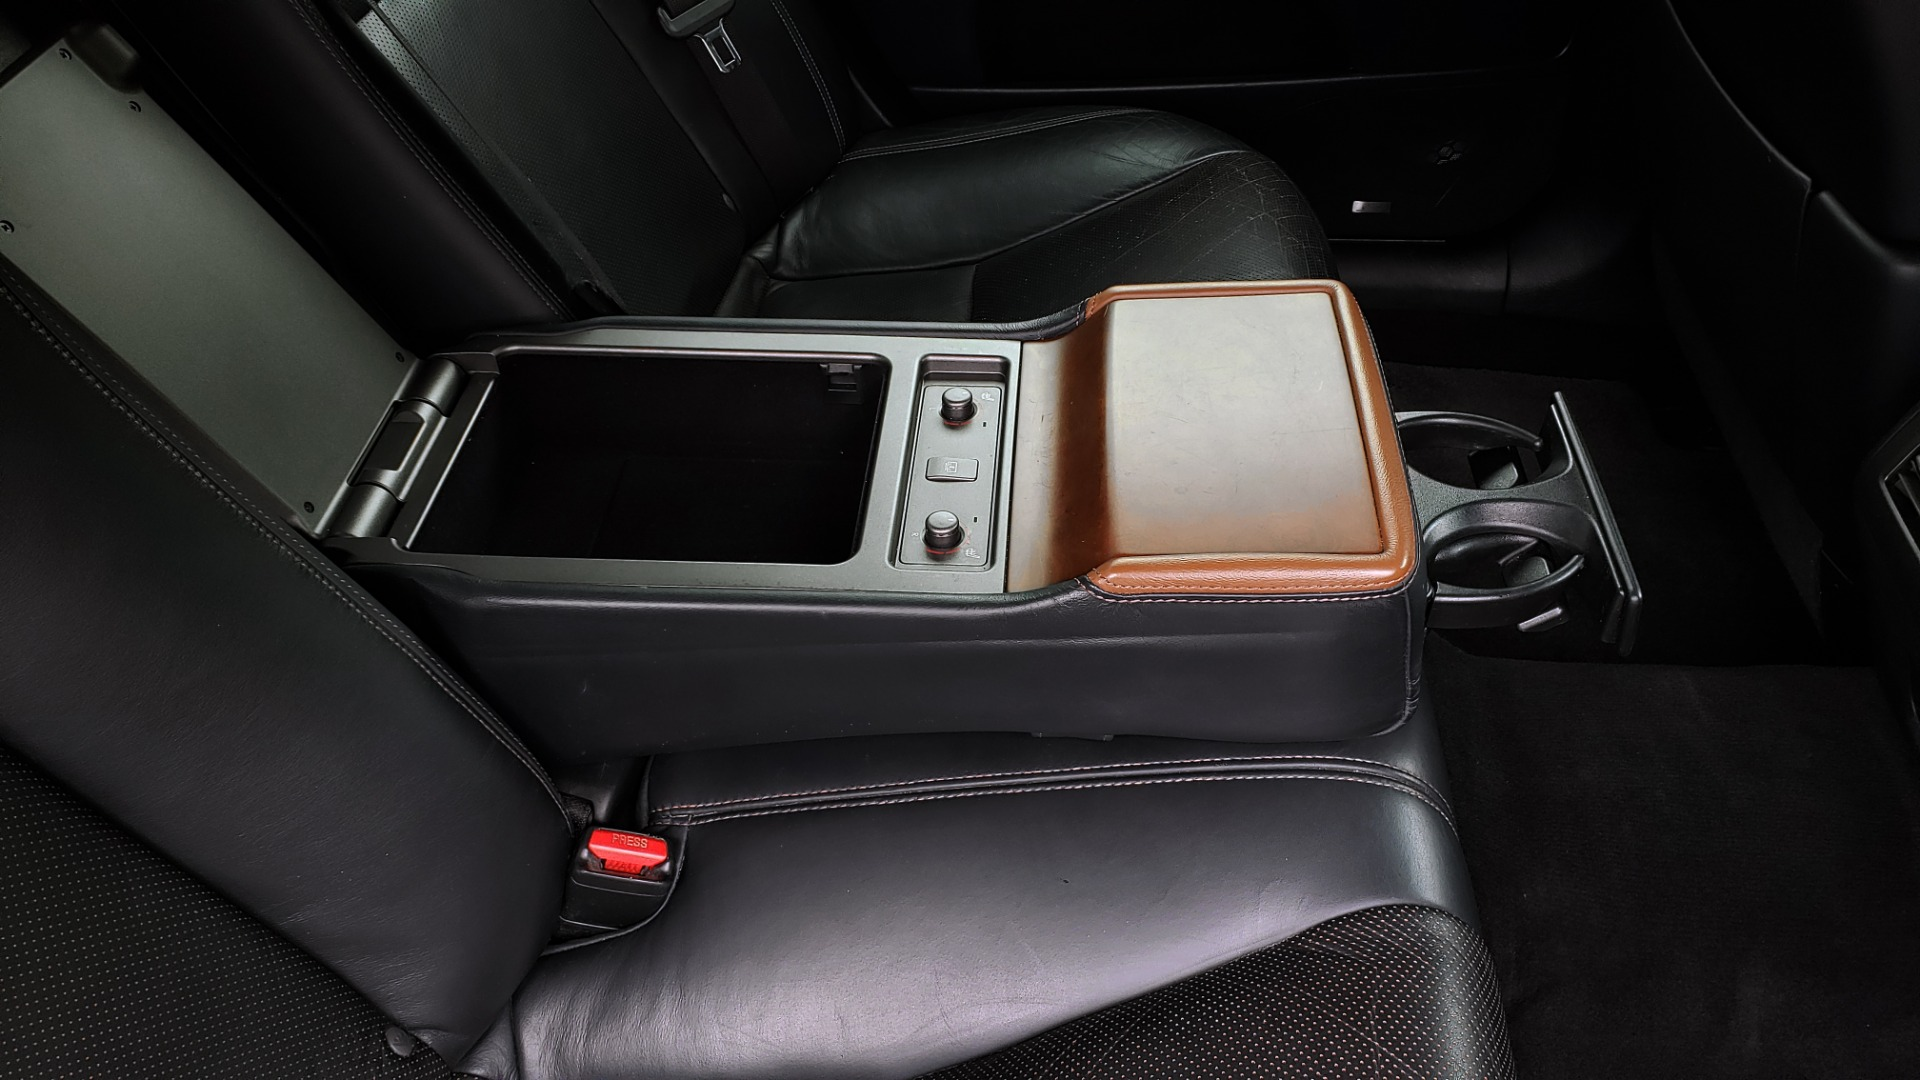 Used 2012 Lexus LS 460 COMFORT W/SPORT / VENT SEATS / NAV / MARK LEV SND / SUNROOF for sale Sold at Formula Imports in Charlotte NC 28227 81